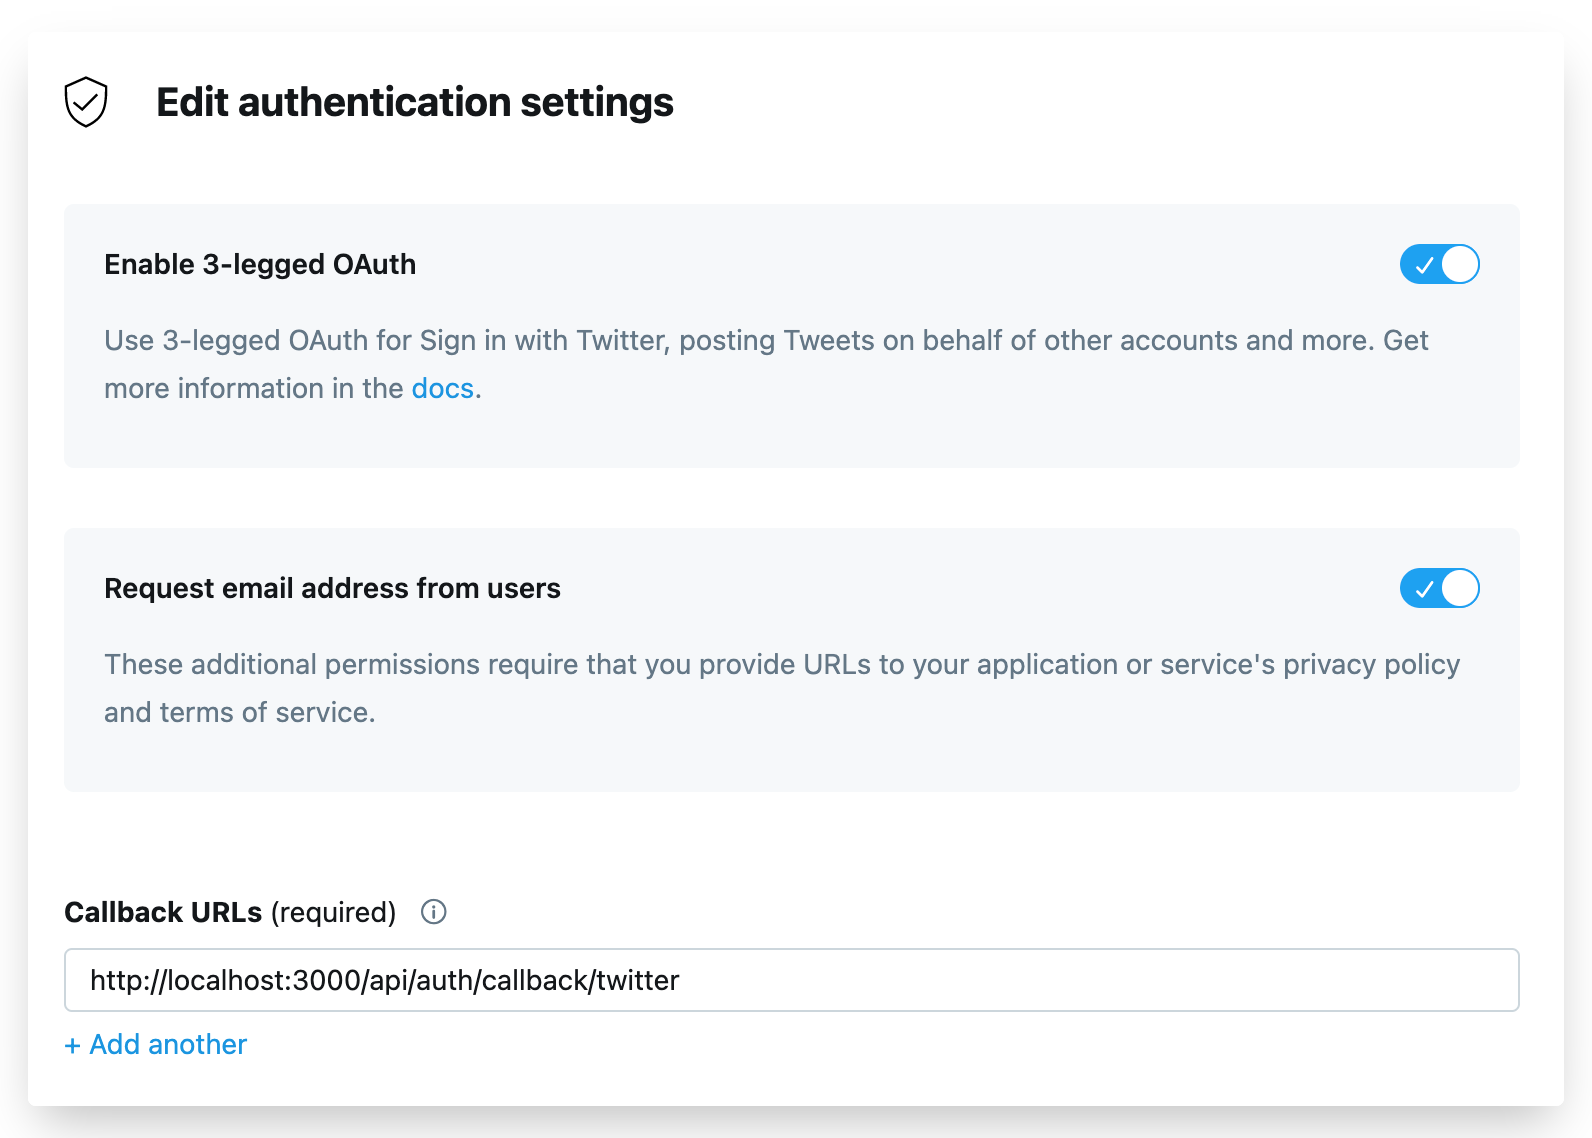 Edit the authentication settings of our Twitter app